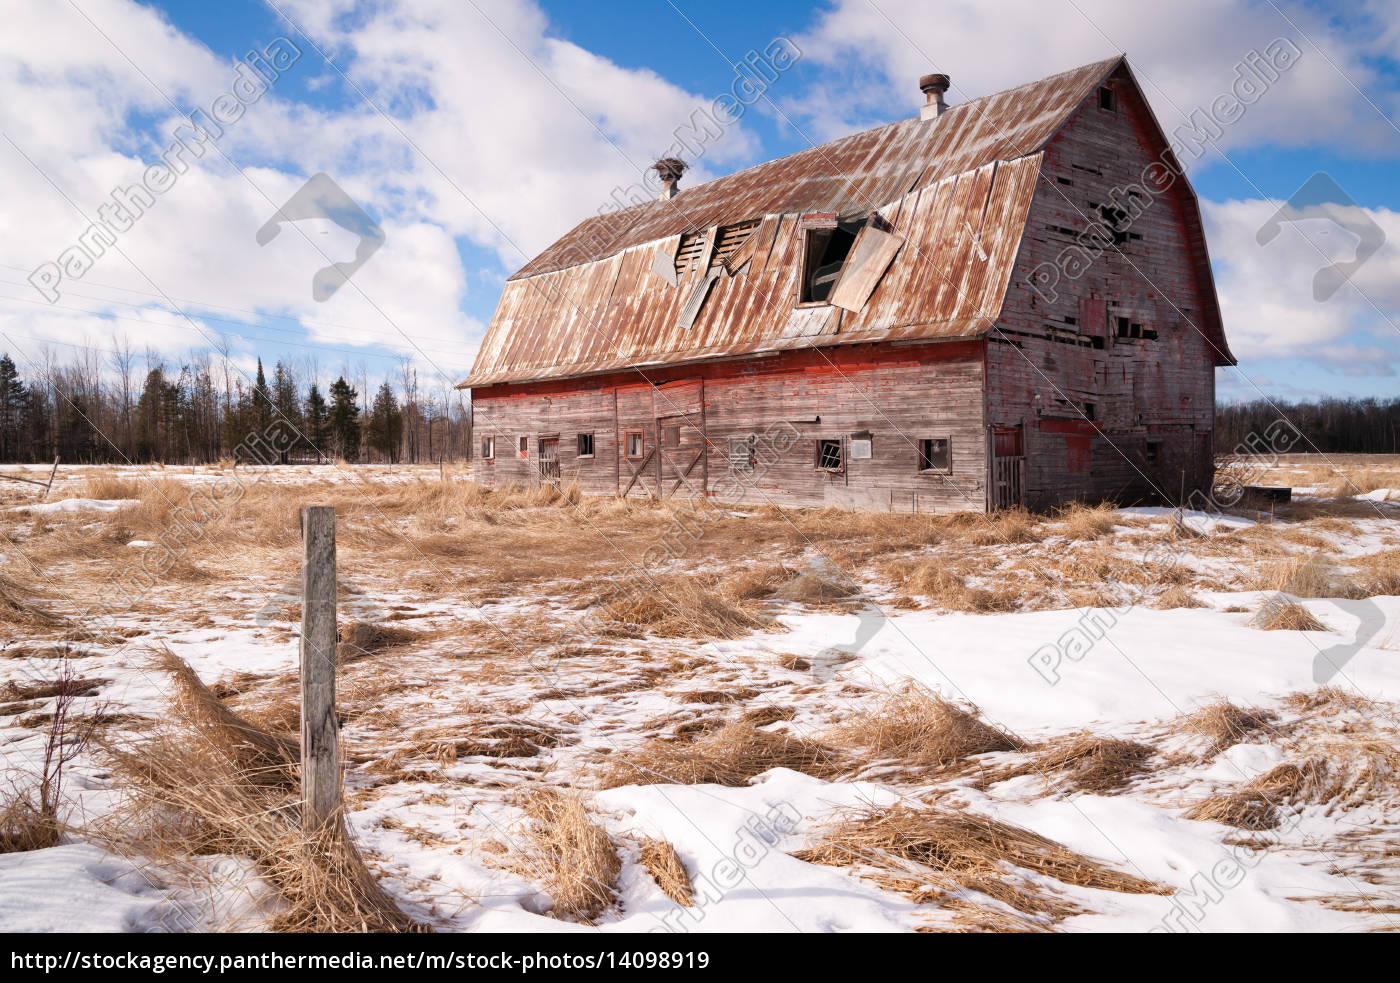 farm, field, forgotten, barn, decaying, agricultural - 14098919